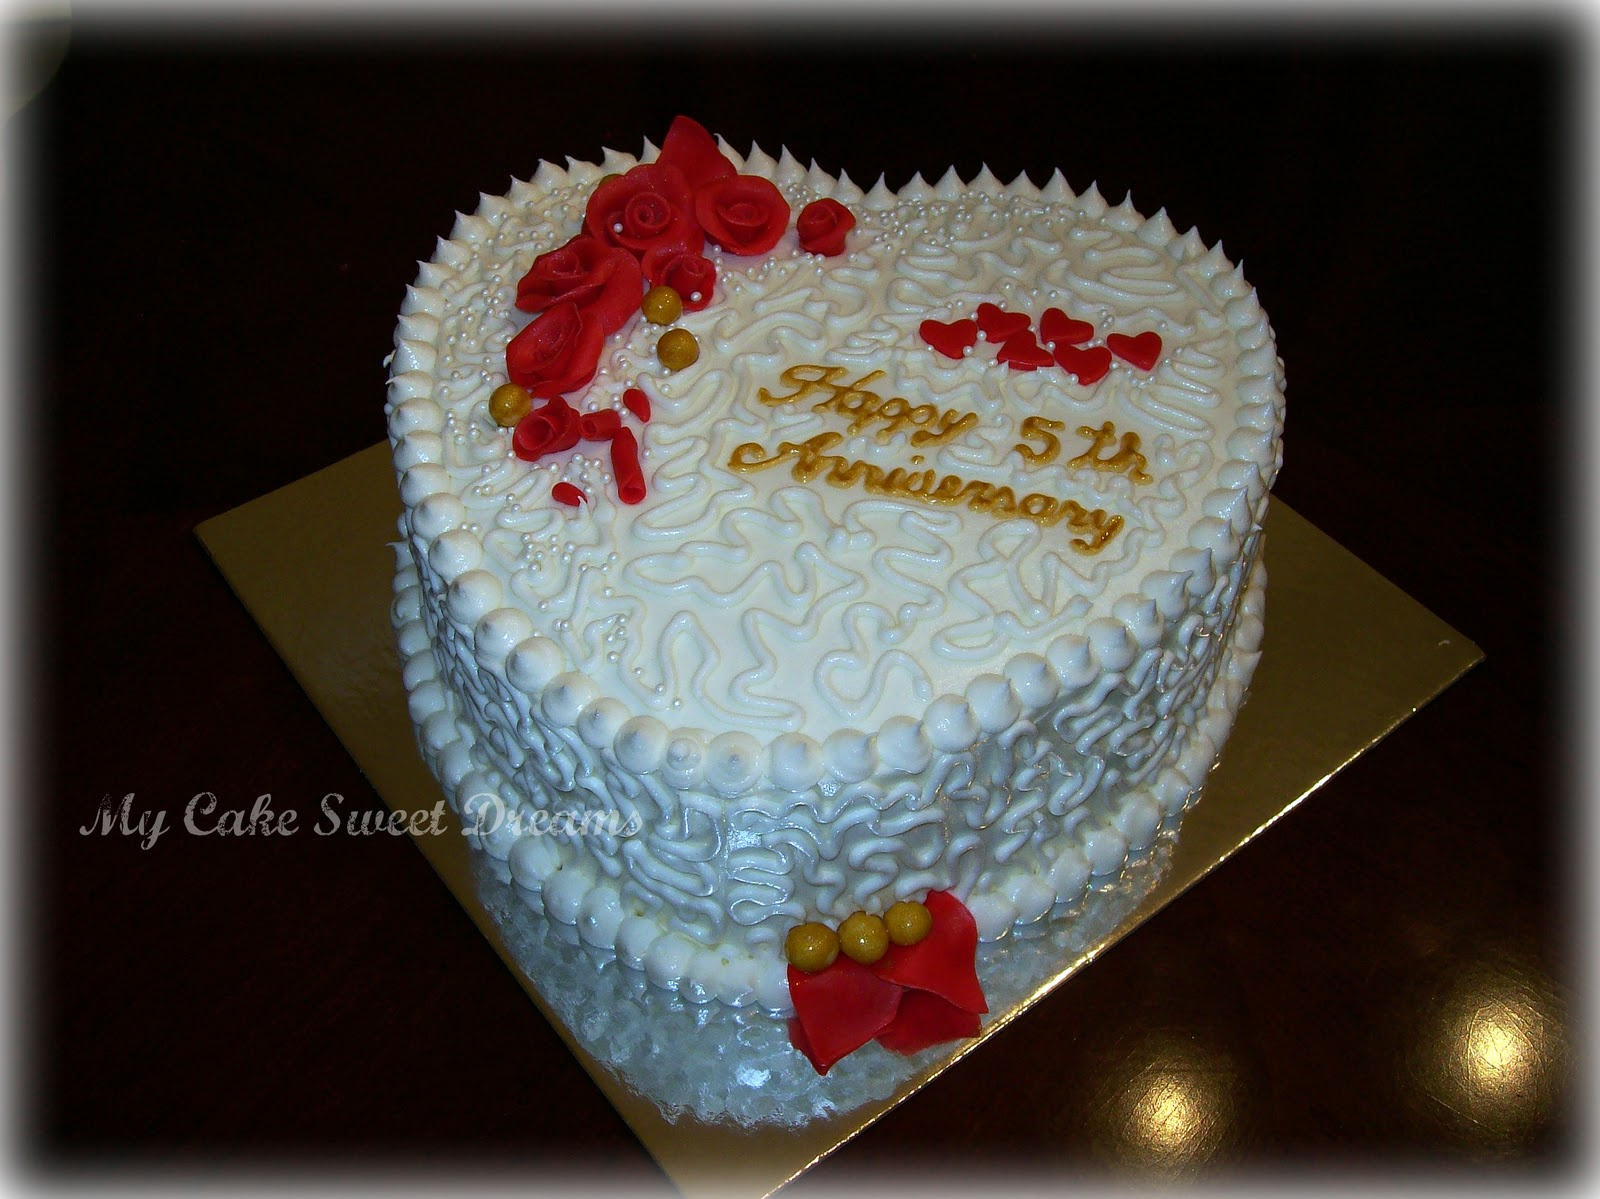 My Cake Sweet Dreams: Anniversary Cake